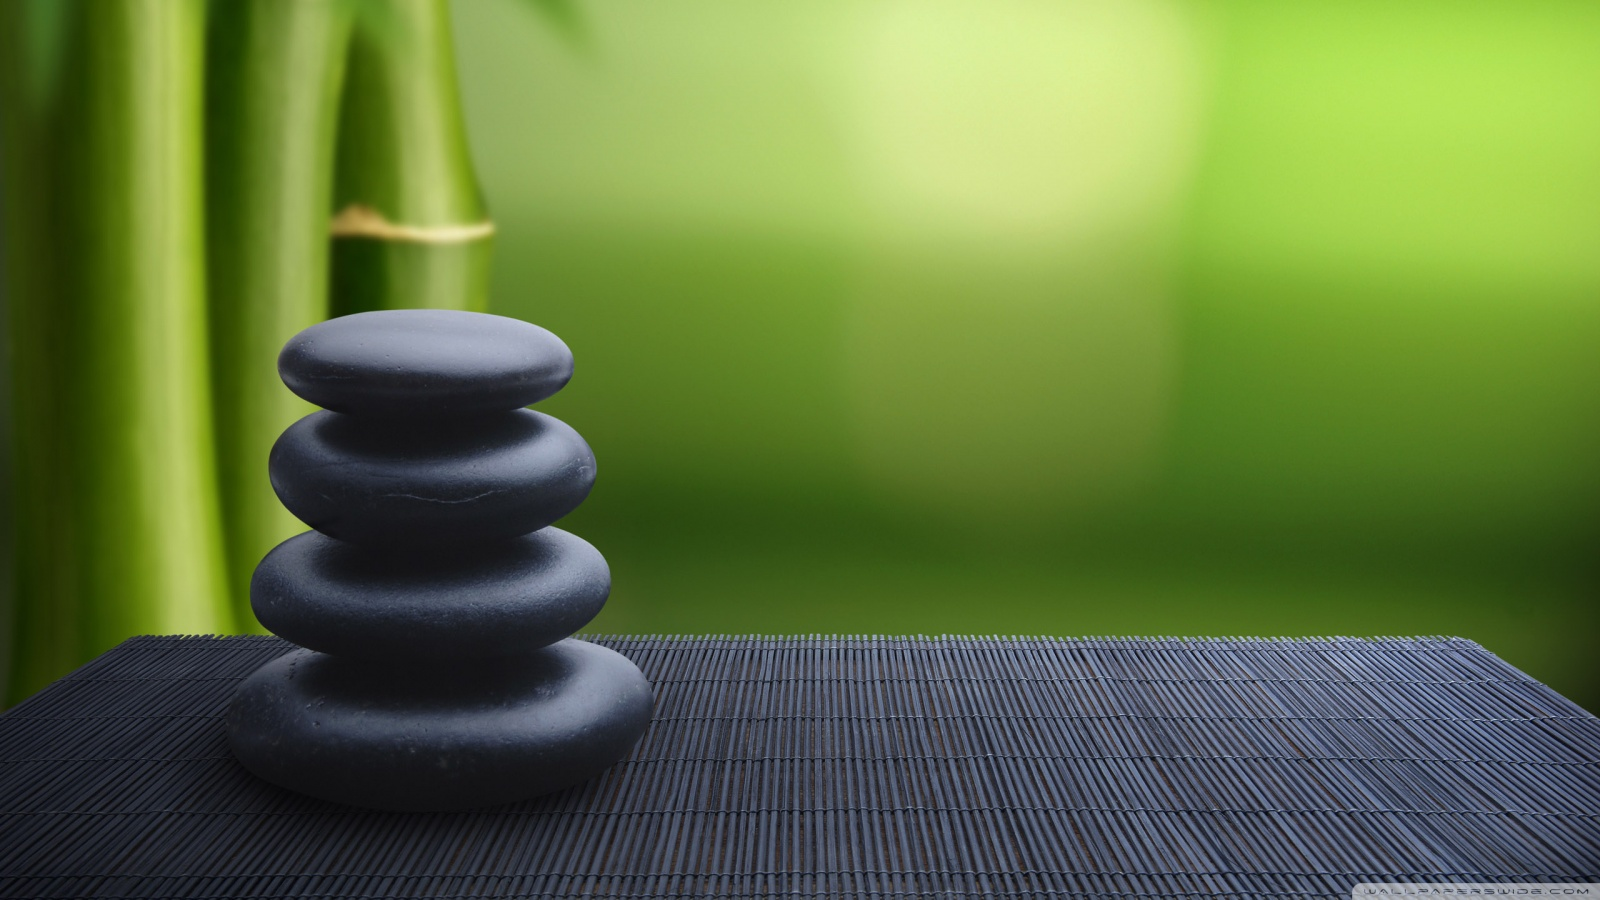 Zen Wallpaper HD